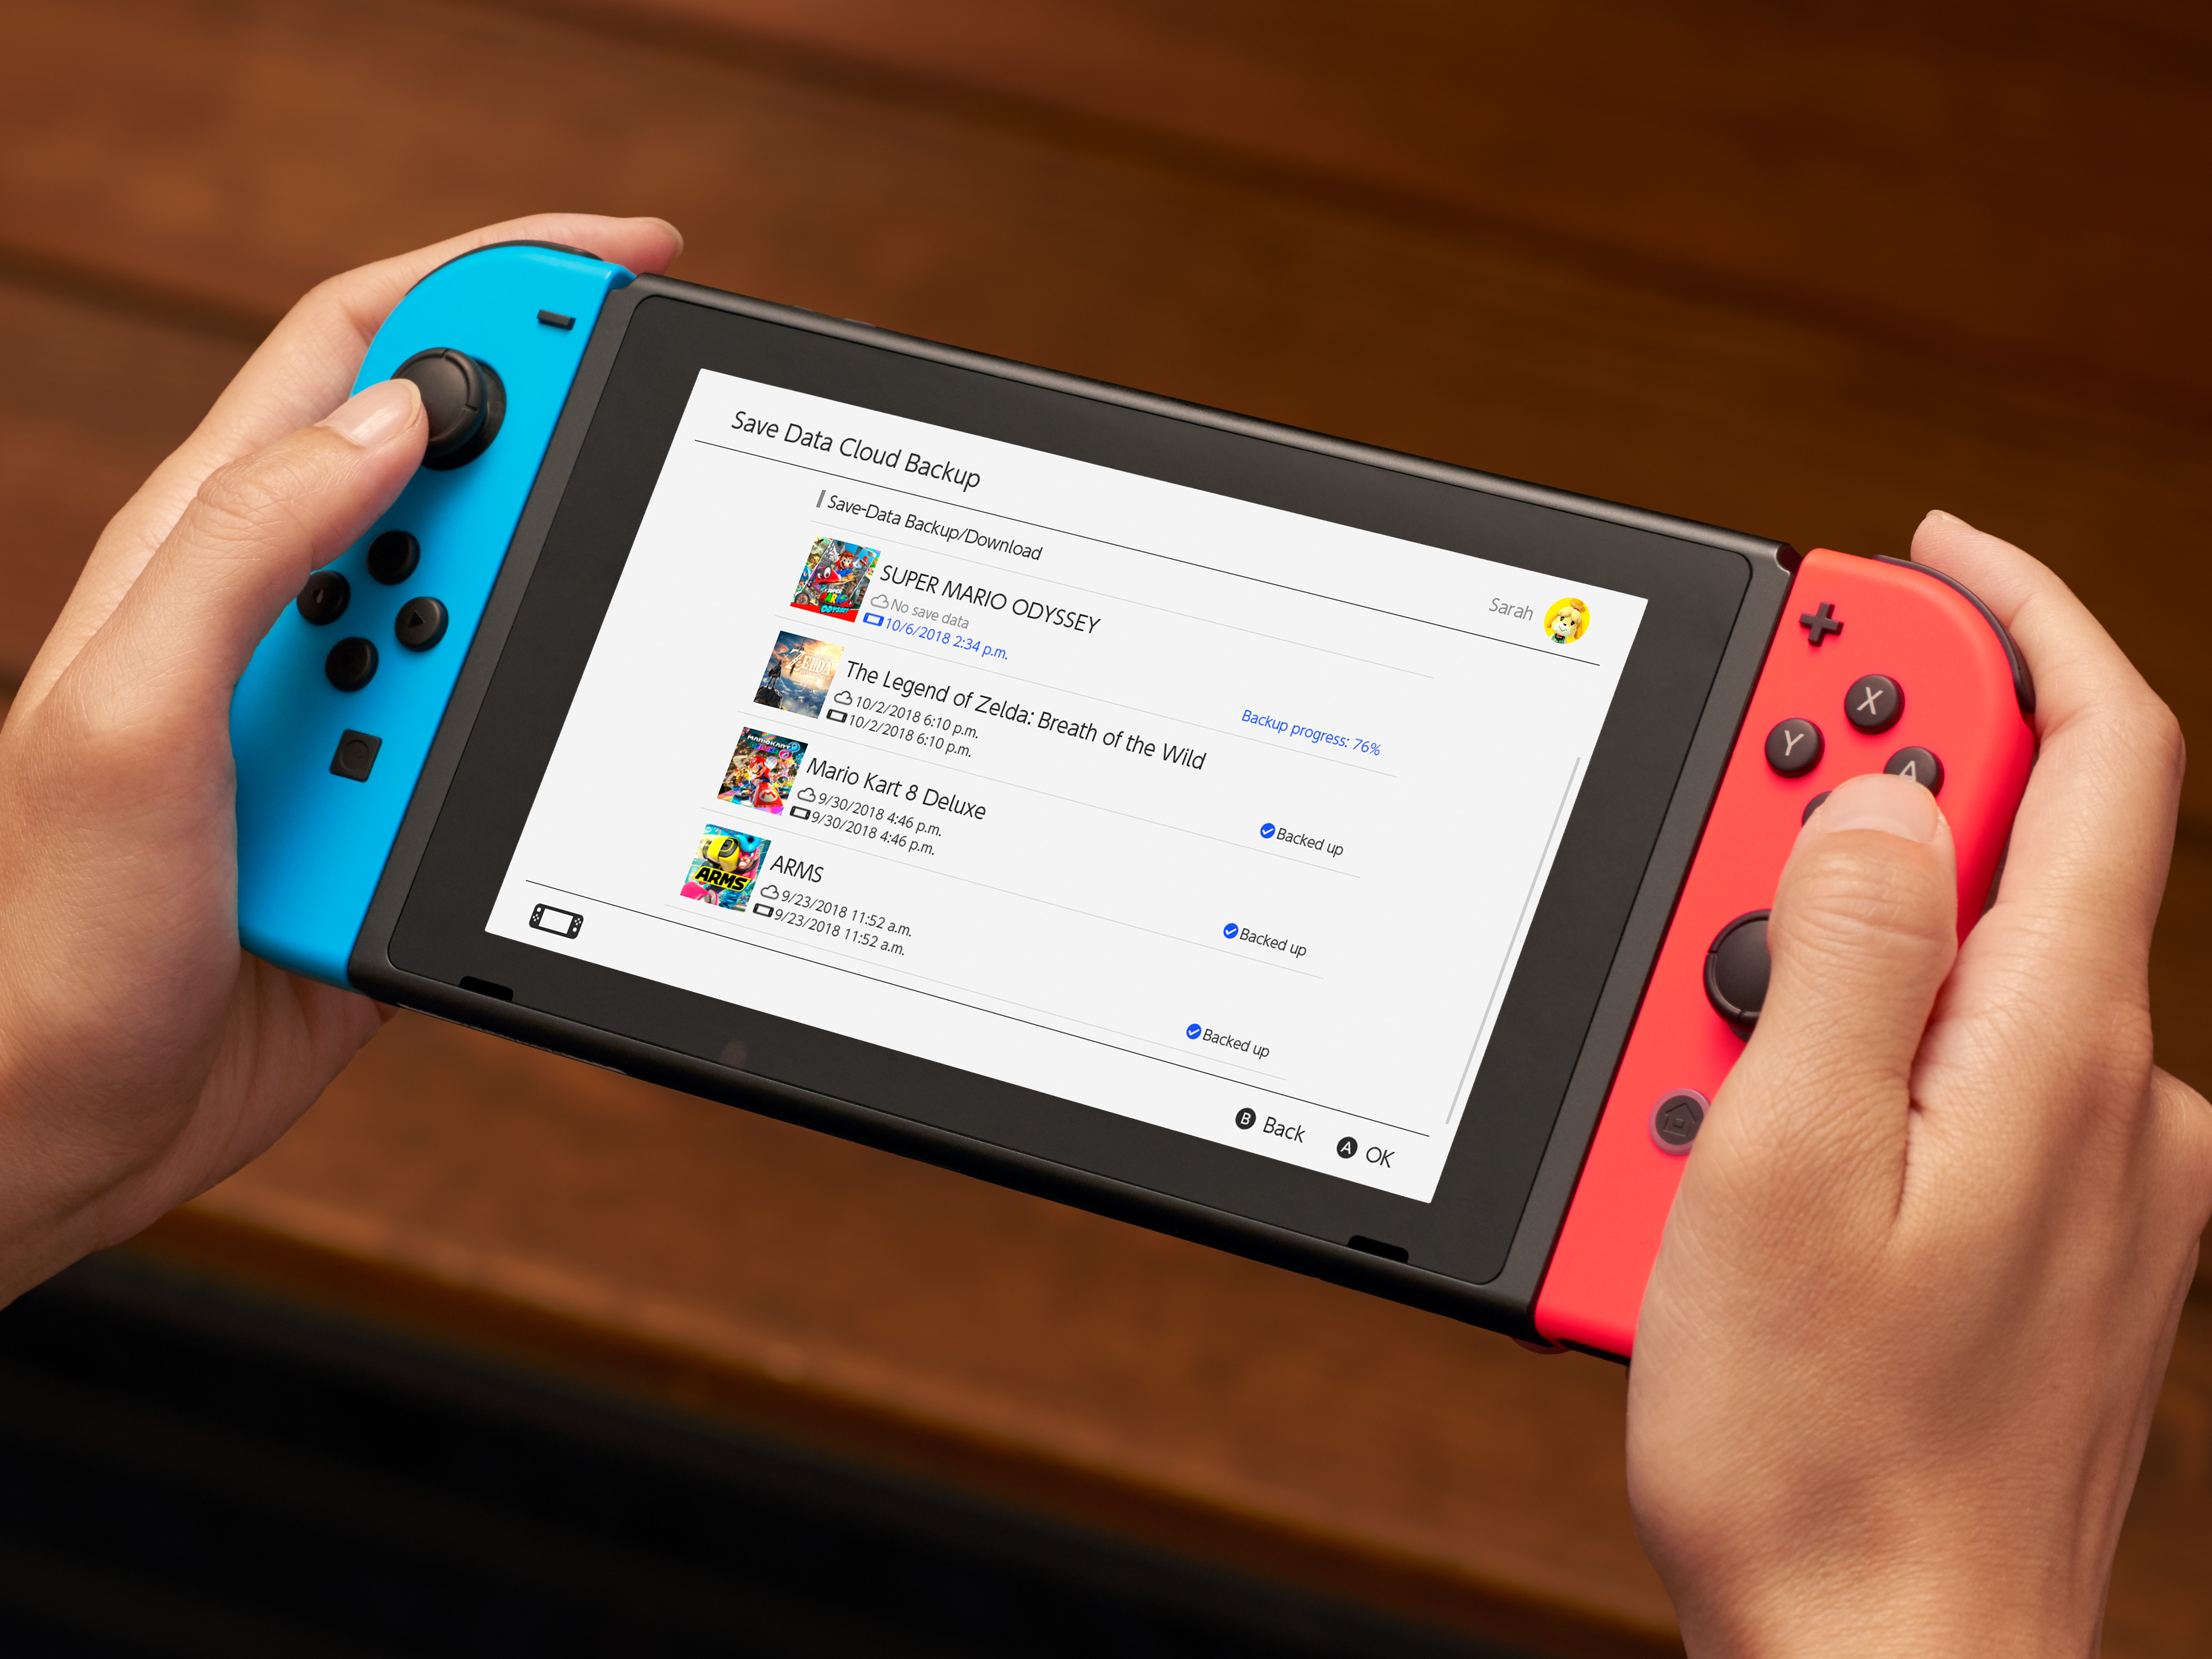 Nintendo Switch is headed to China